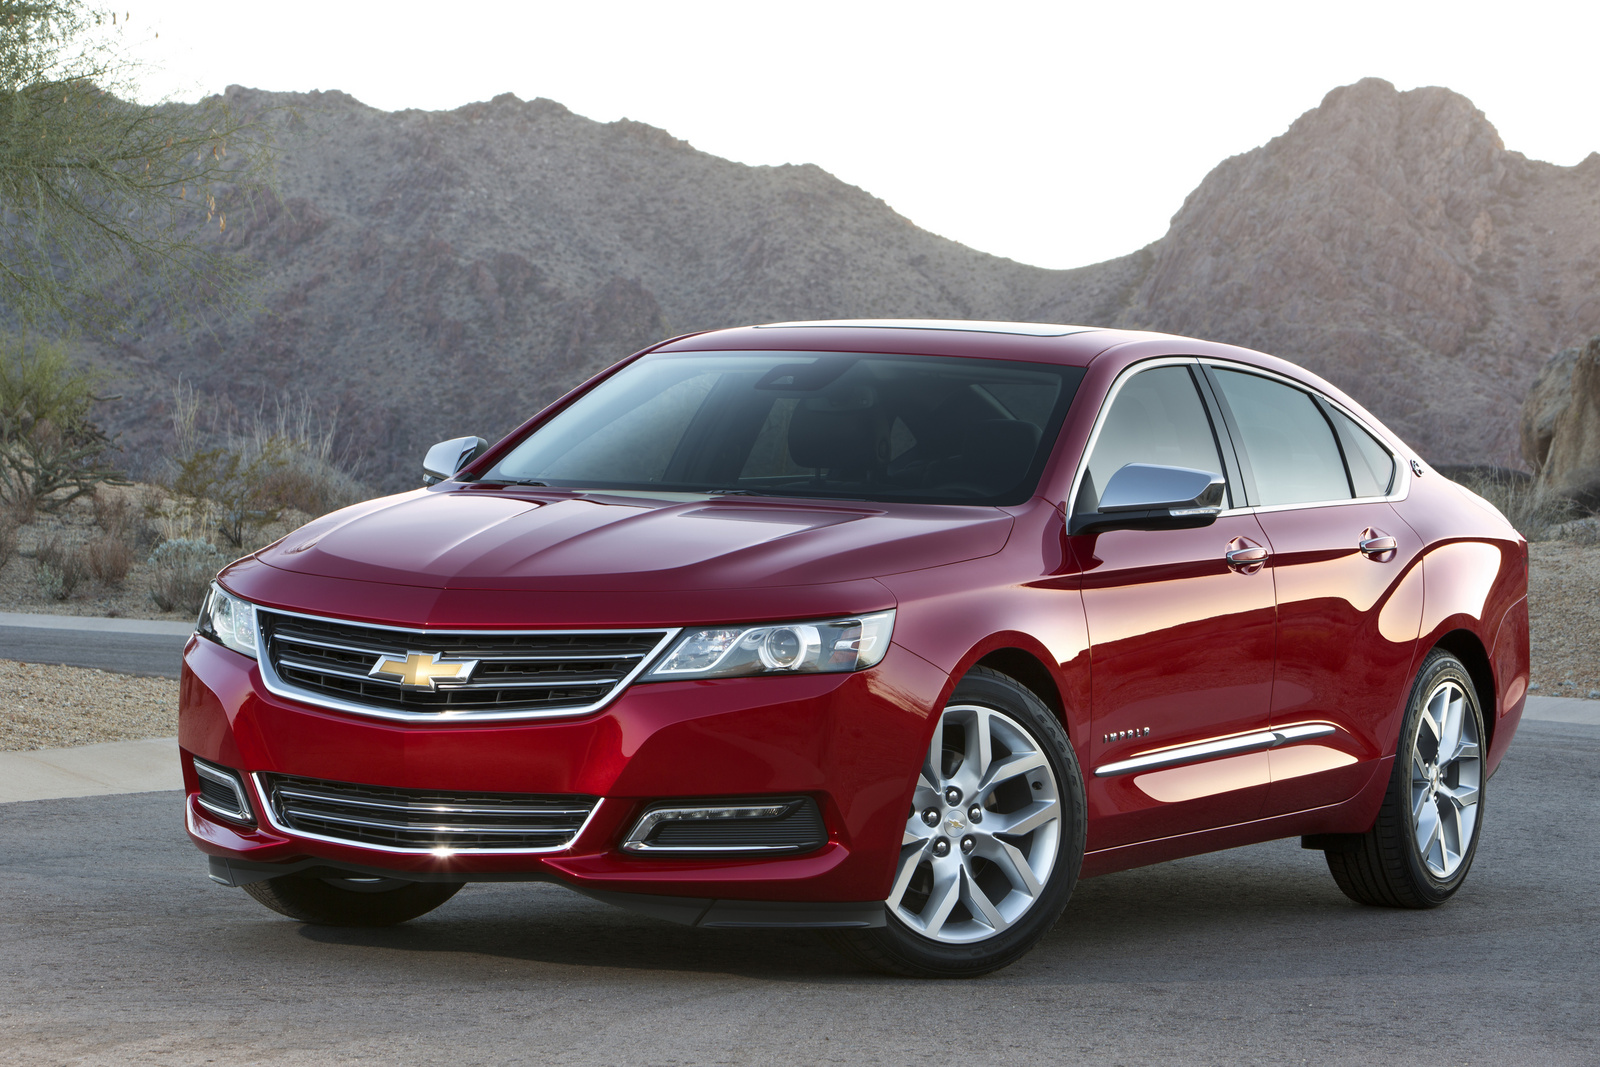 2014 chevrolet impala test drive review cargurus. Black Bedroom Furniture Sets. Home Design Ideas